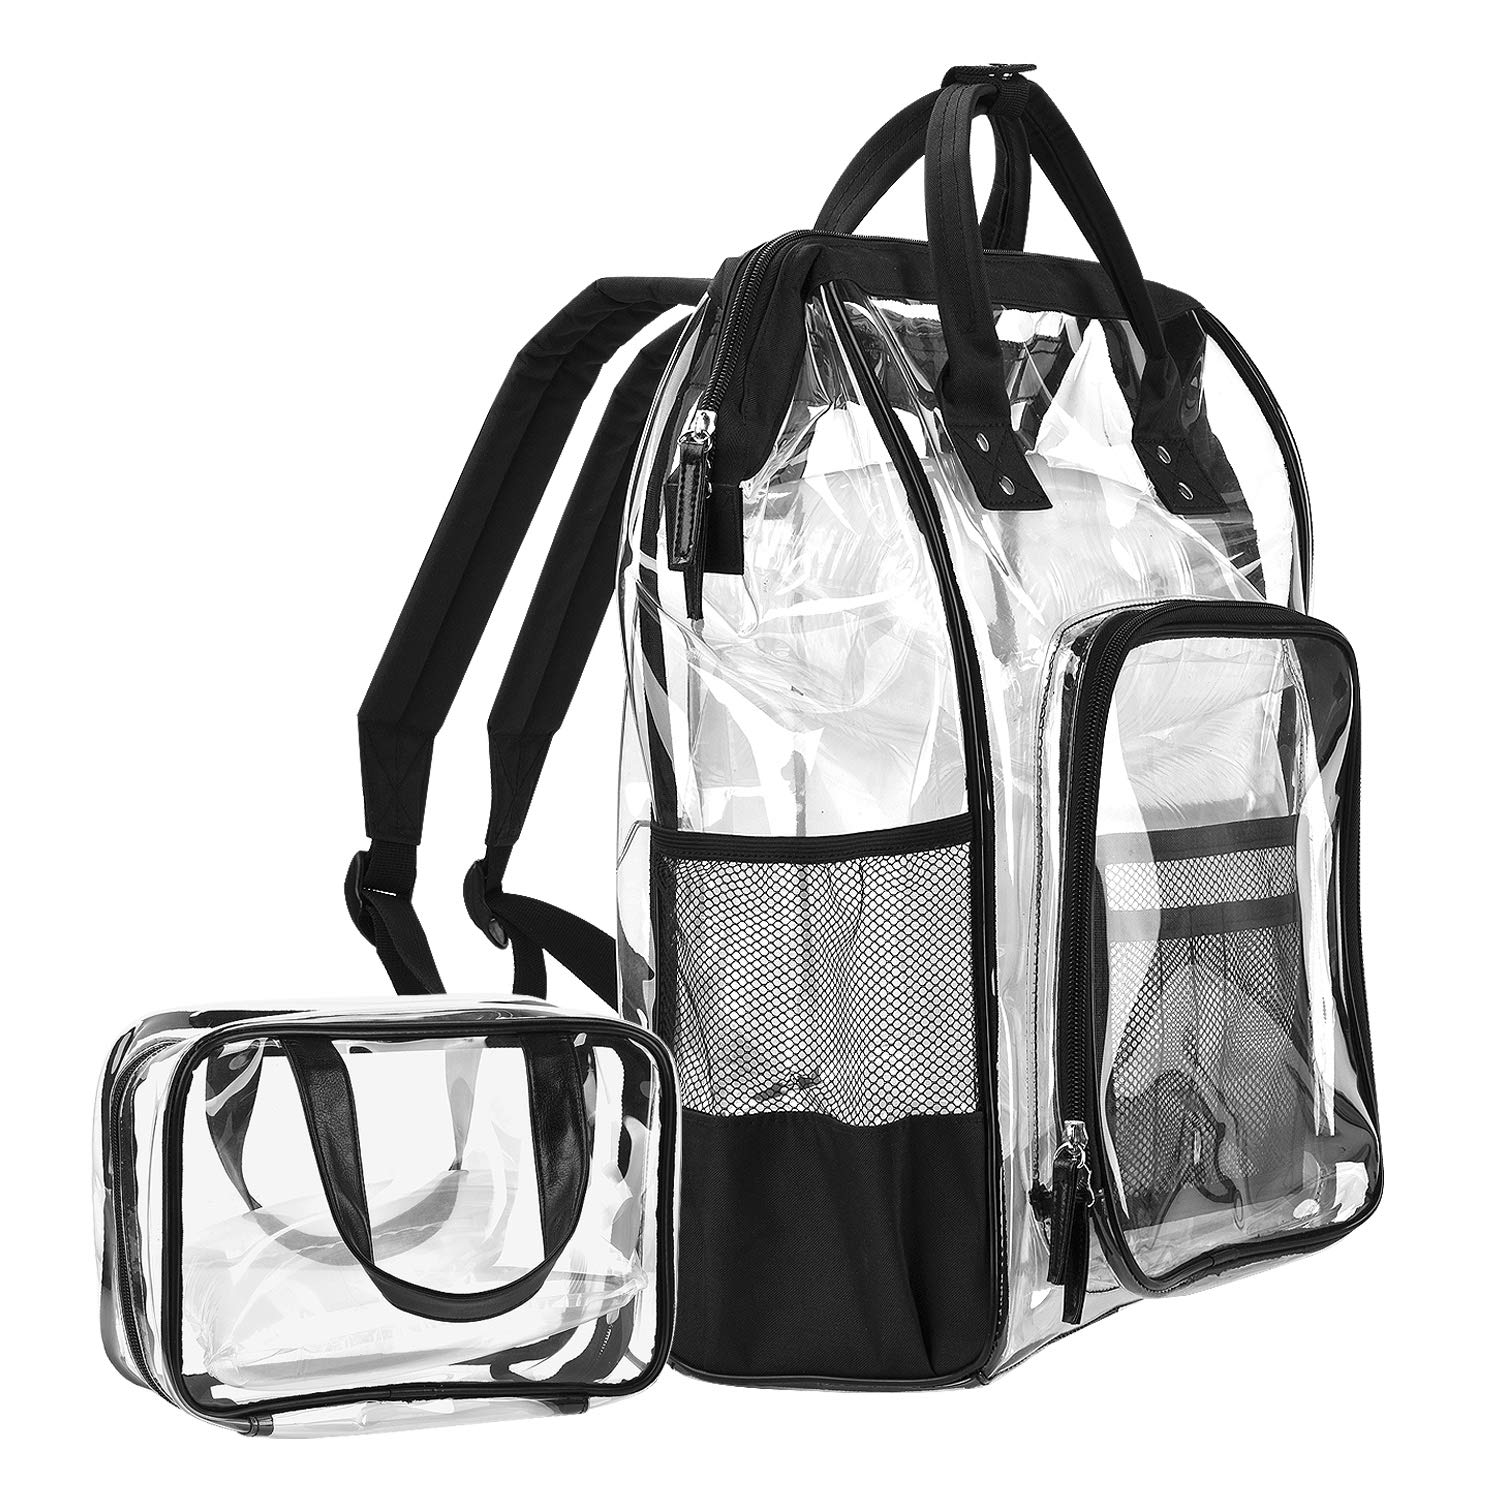 icyber Clear Backpack, clear Transparent PVC Multi-Pockets School Backpacks/Outdoor Backpack with Cosmetic Bag, Fit 15.6 Inch Laptop Travel Rucksack with Trim-Adjustable Straps & Mesh Side (Black)